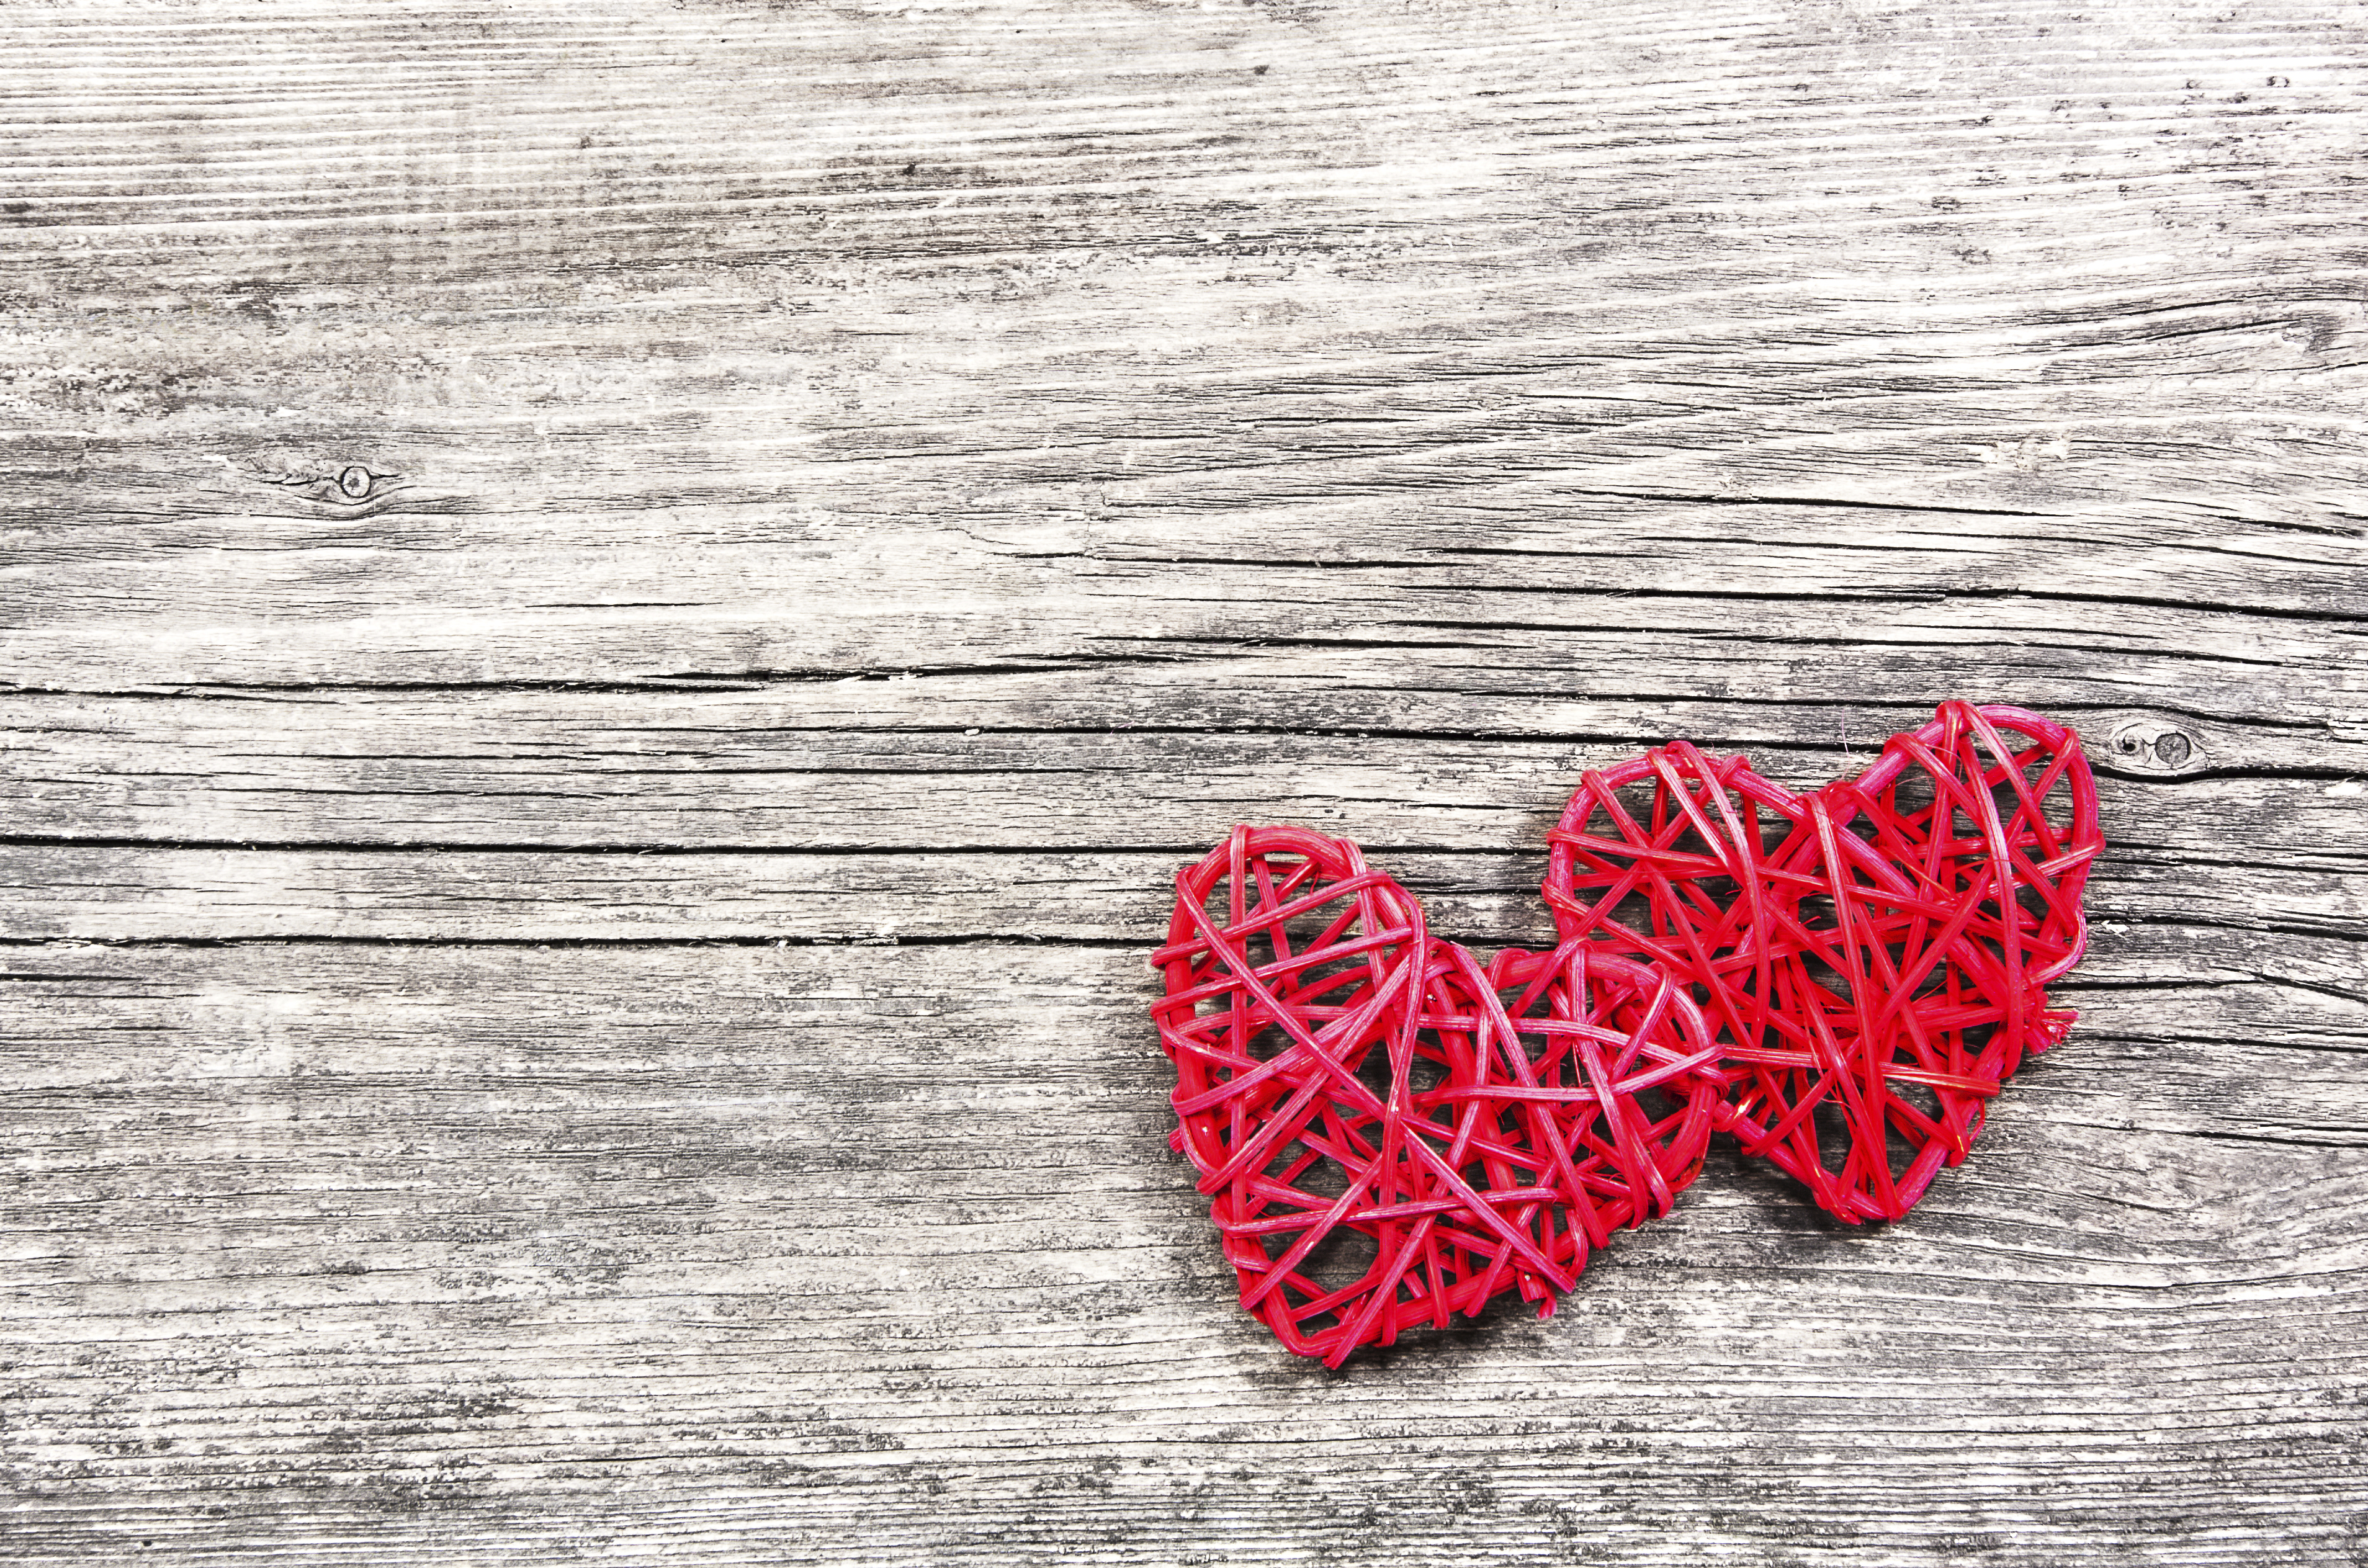 Two red hearts on vintage wooden background